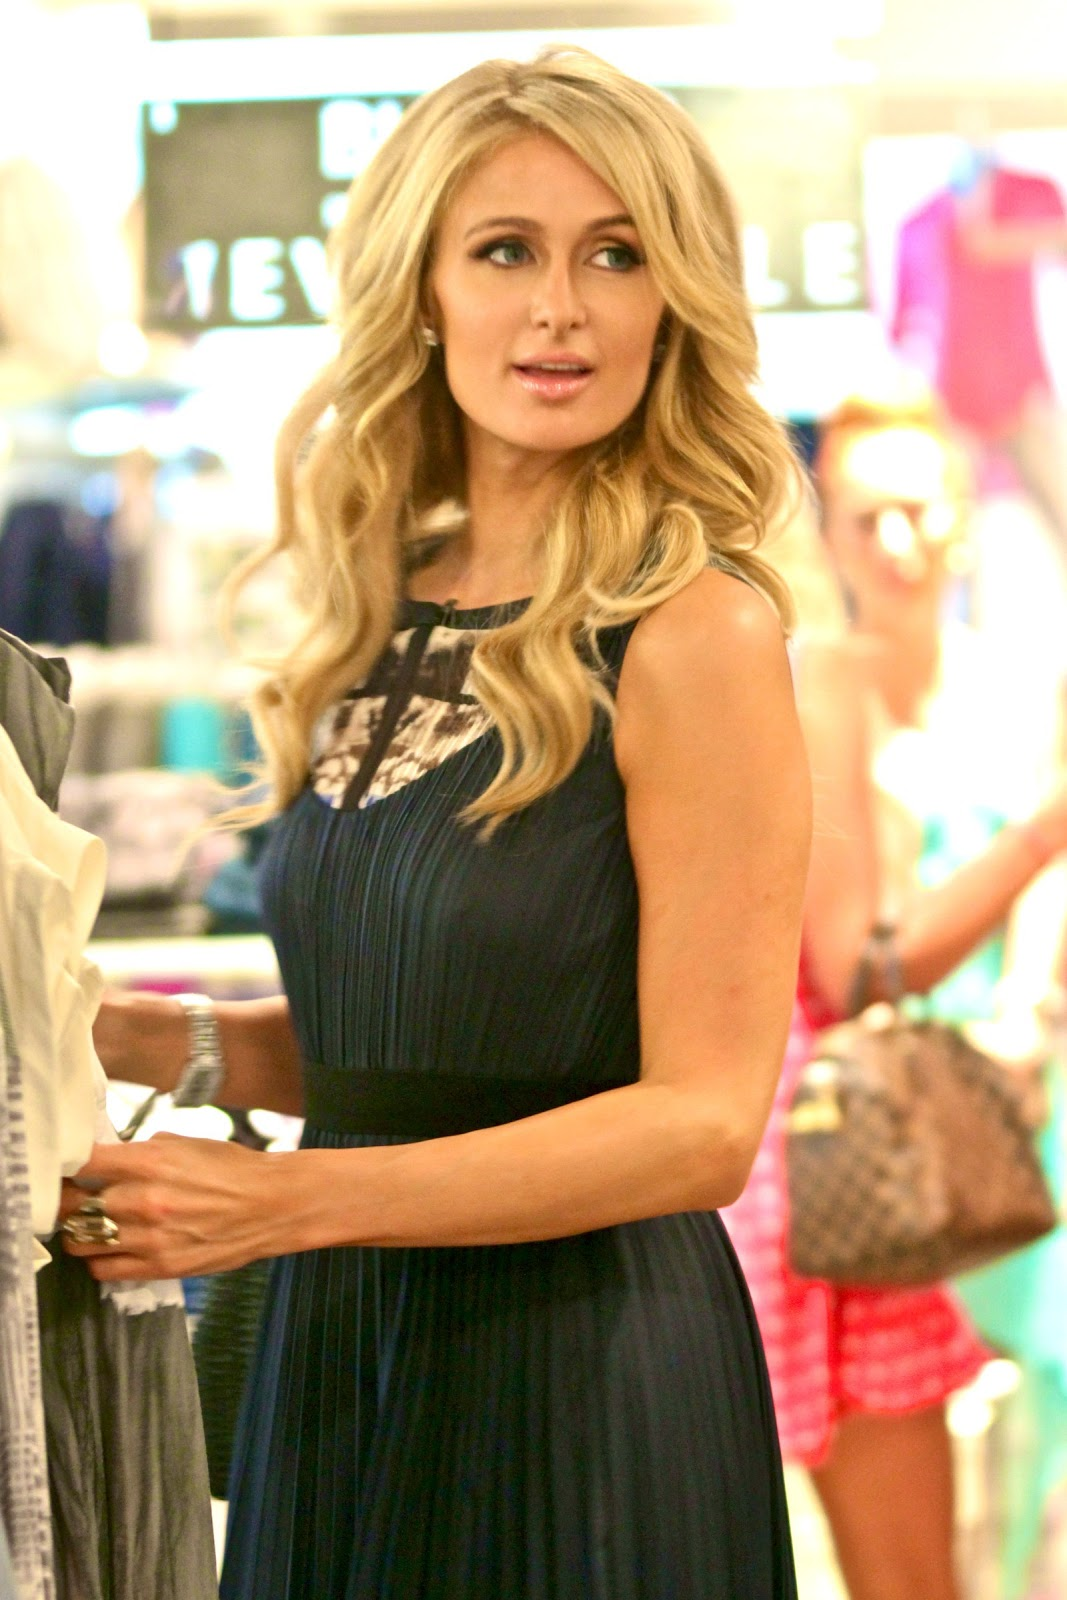 Paris Hilton Spotted Shopping In Los Angeles - Hot Celeb